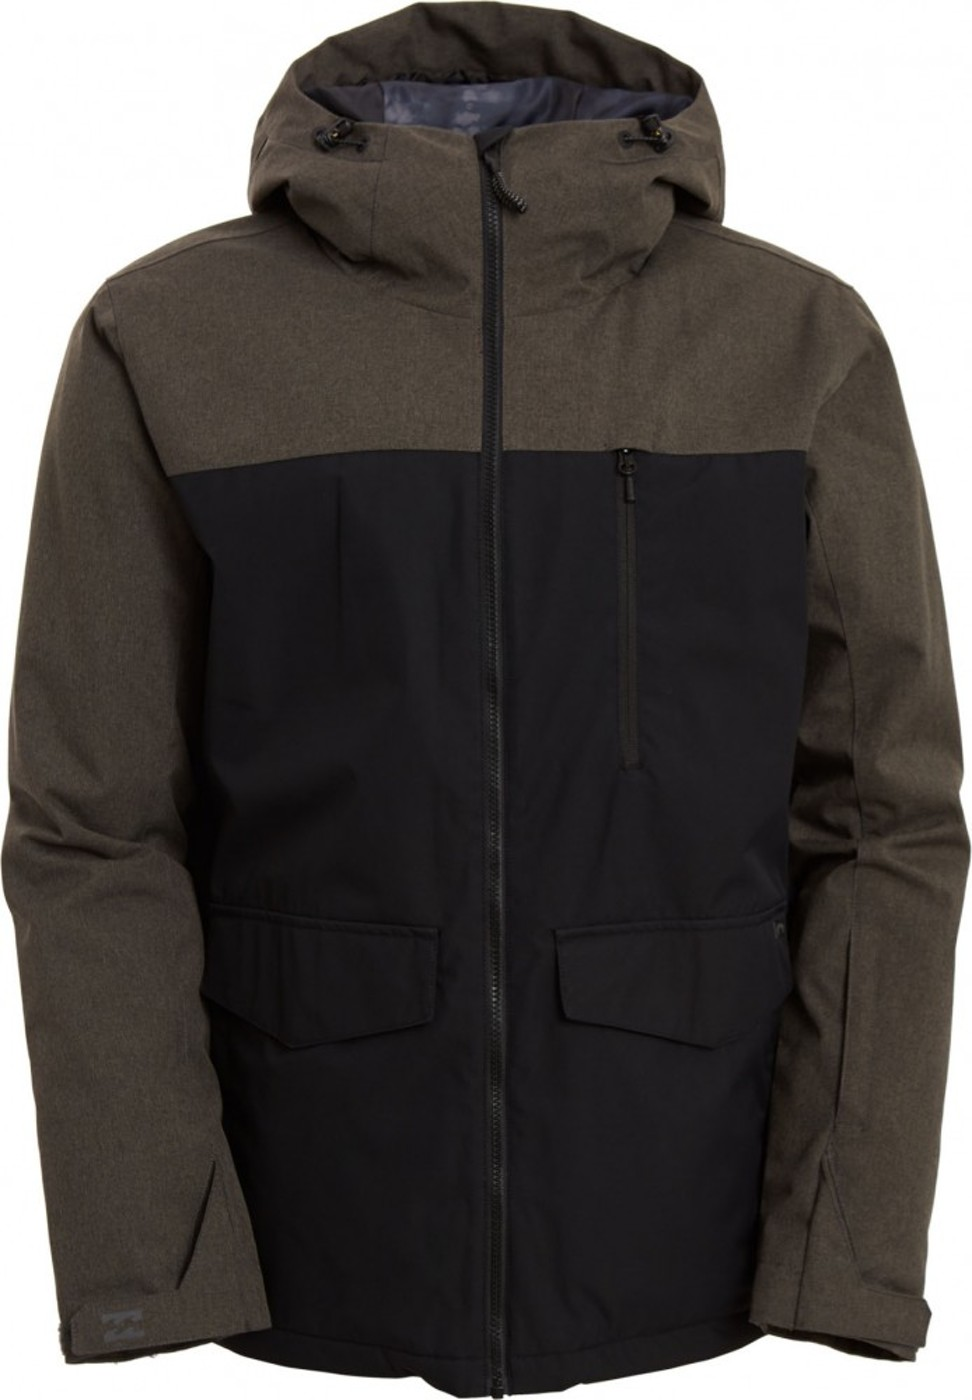 BILLABONG ALL DAY JKT - Herren